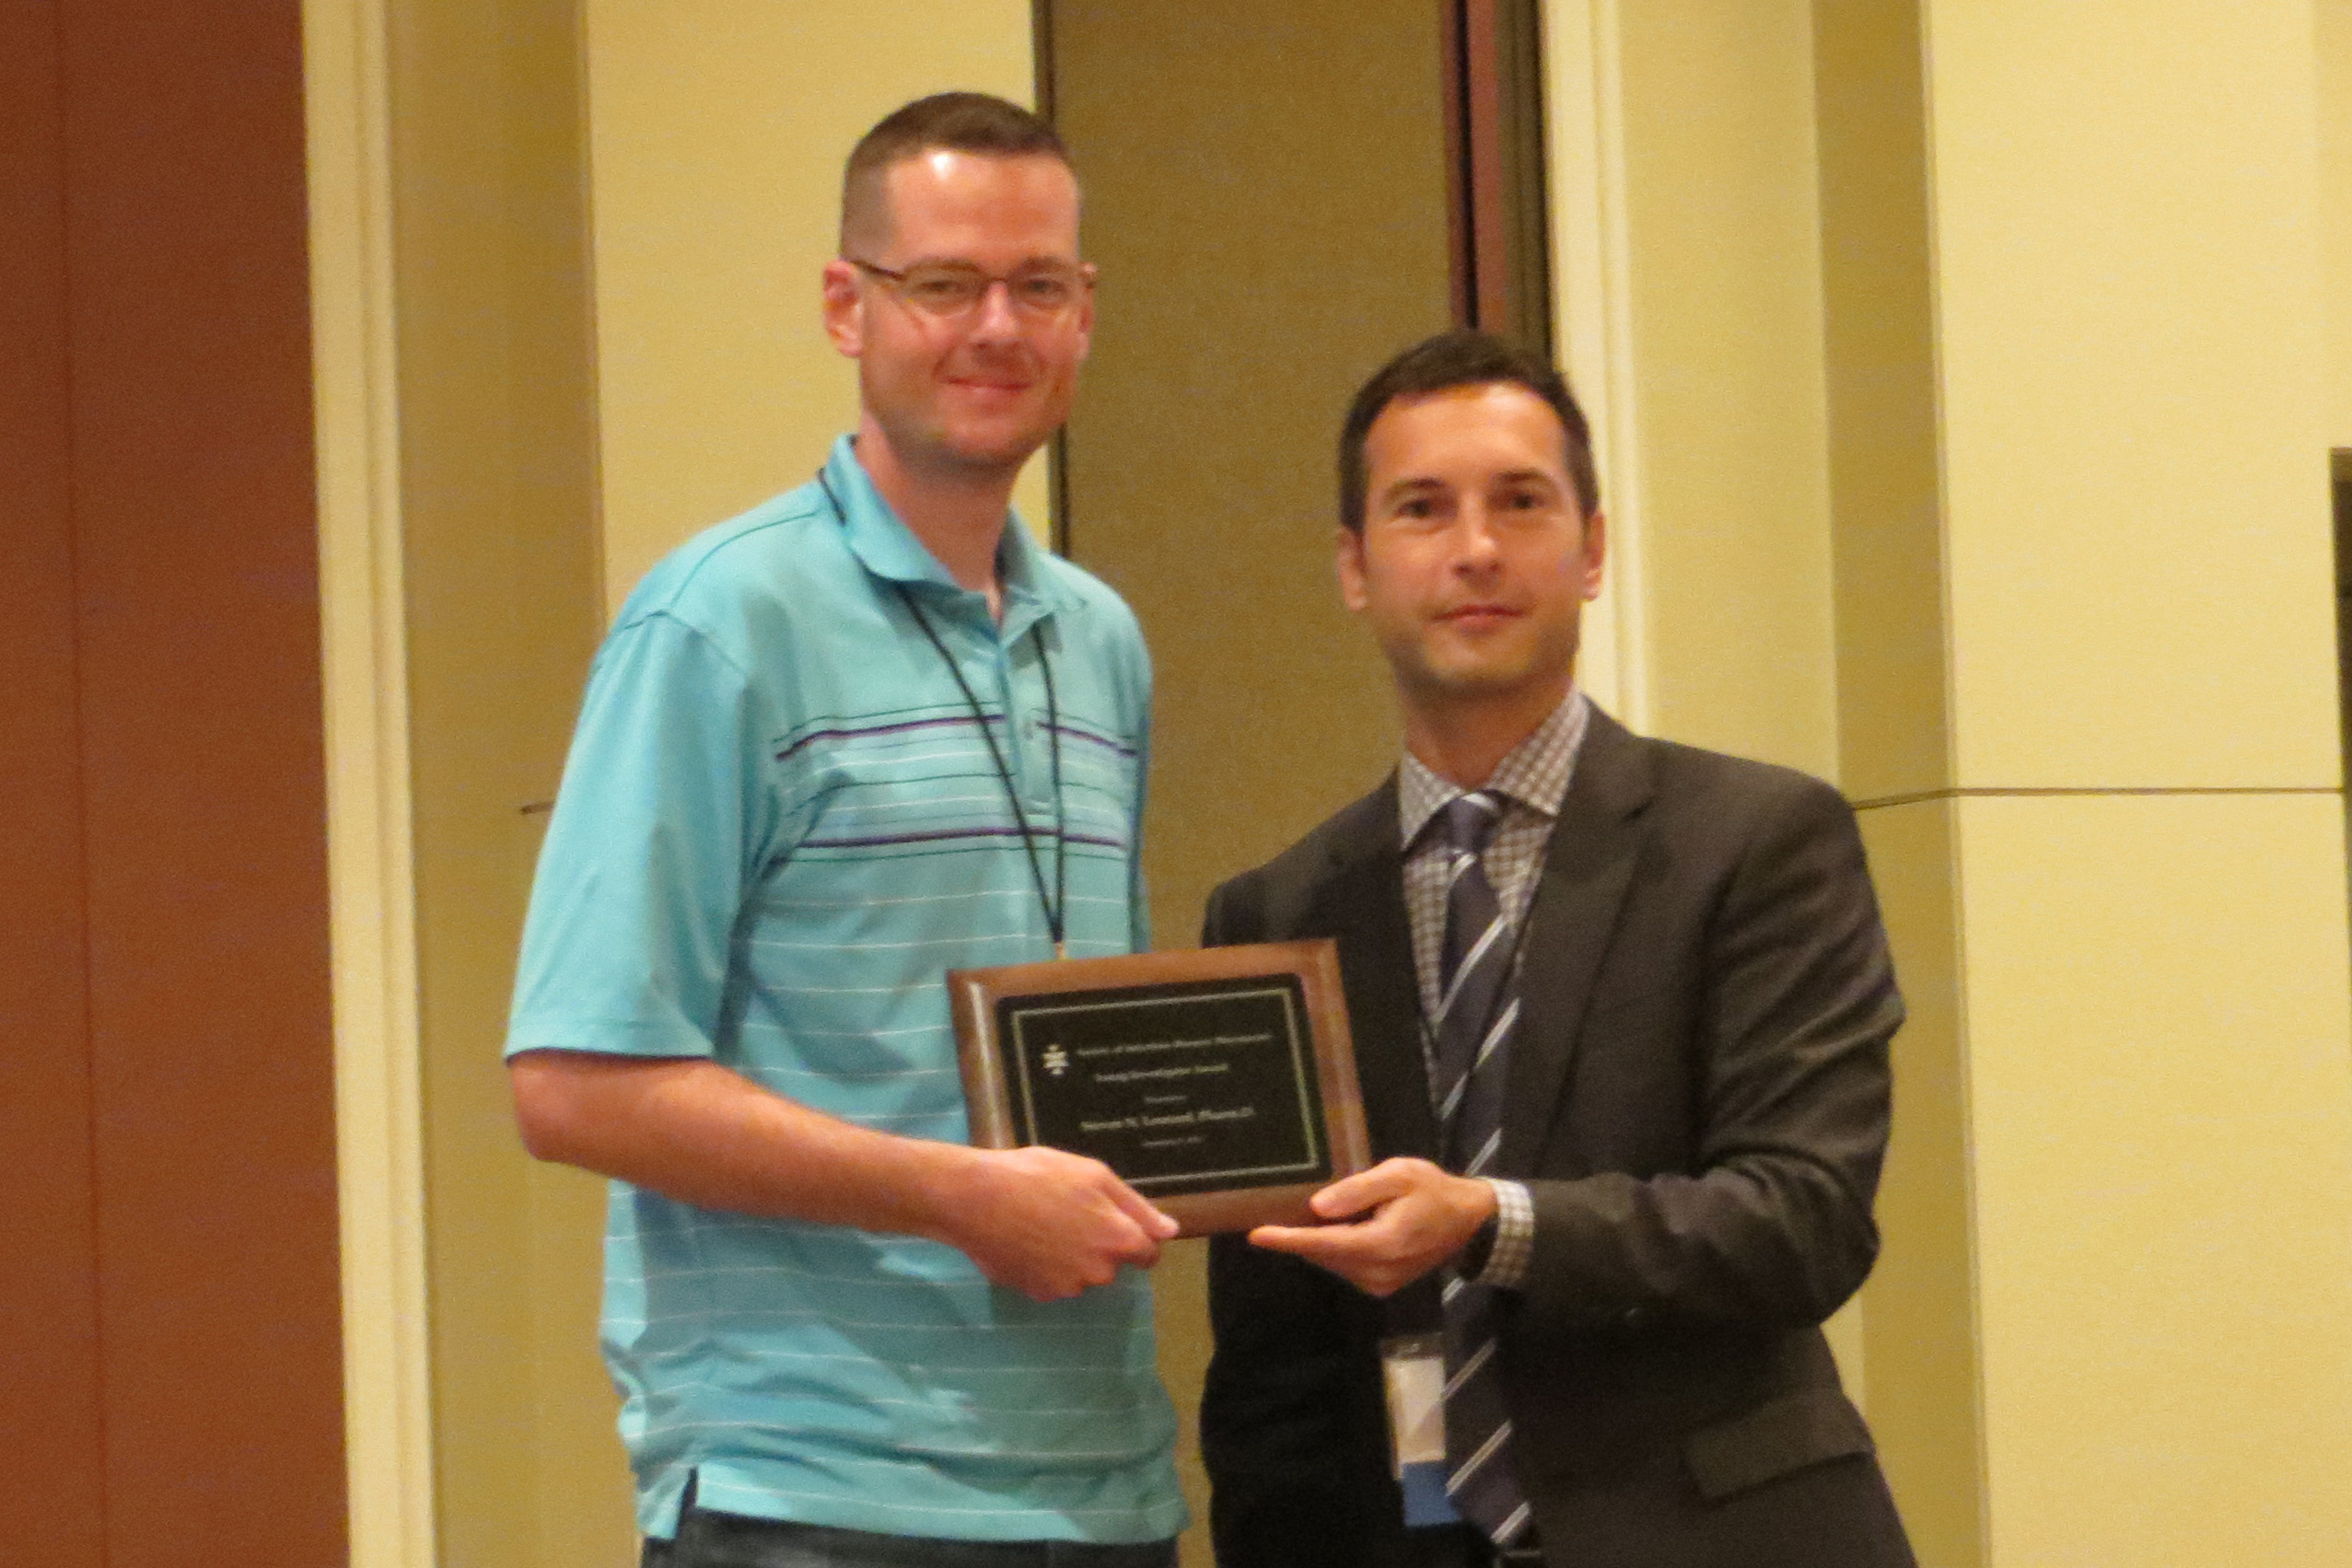 Steve Leonard receives 2014 Young Investigator Award